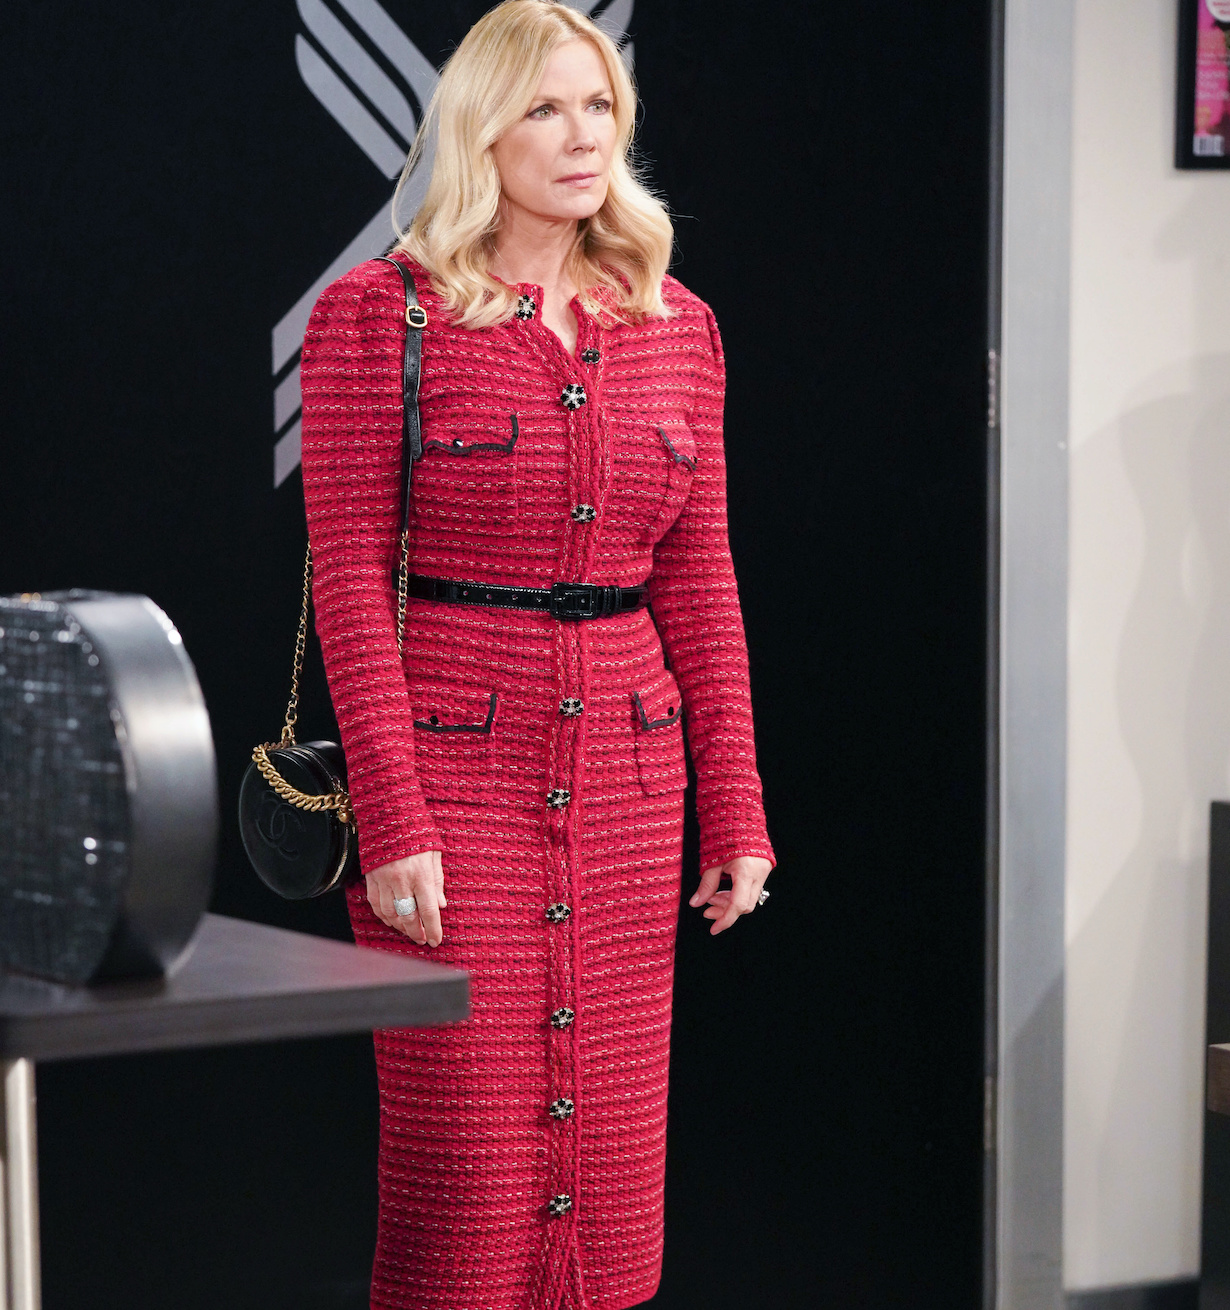 """Katherine Kelly Lang """"The Bold and the Beautiful"""" Set CBS Television City Los Angeles, Ca. 02/05/21 © Howard Wise/jpistudios.com 310-657-9661 Episode # 8486 U.S.Airdate 04/01/21"""